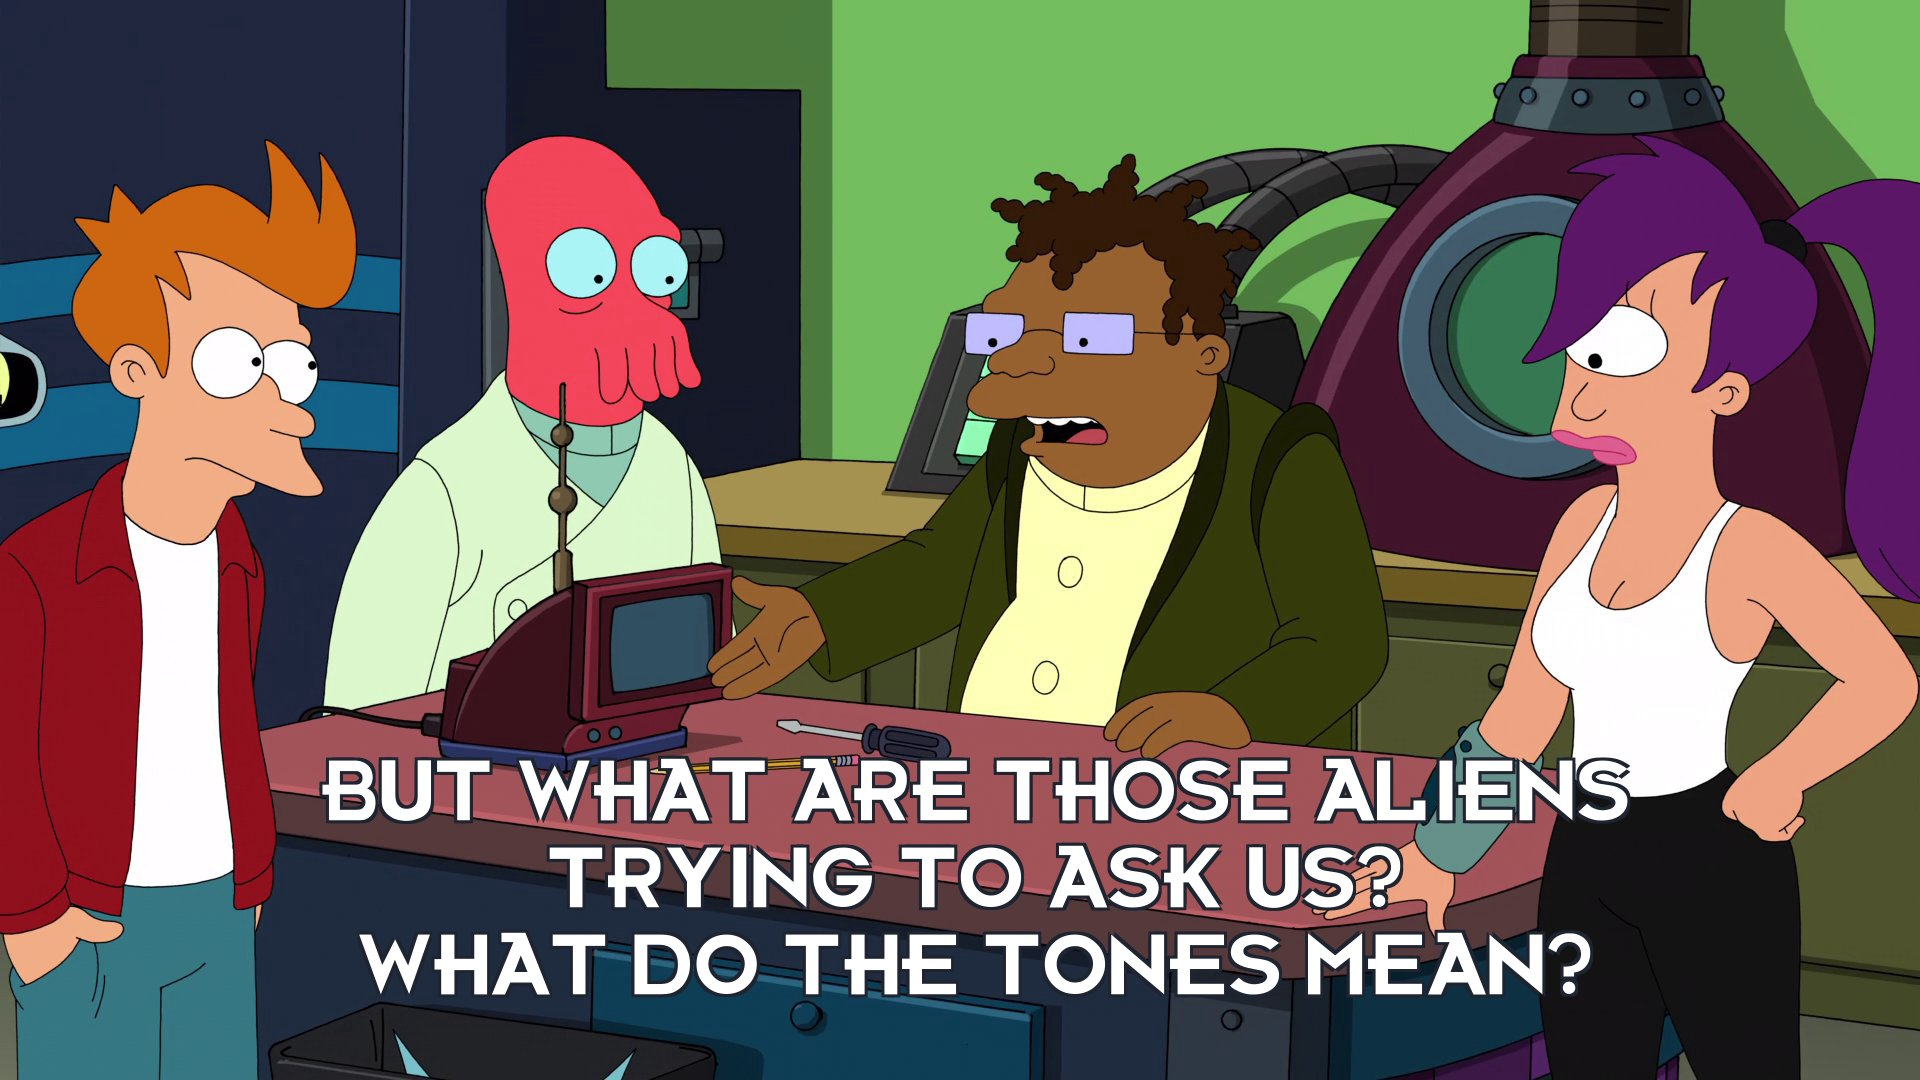 Hermes Conrad: But what are those aliens trying to ask us? What do the tones mean?